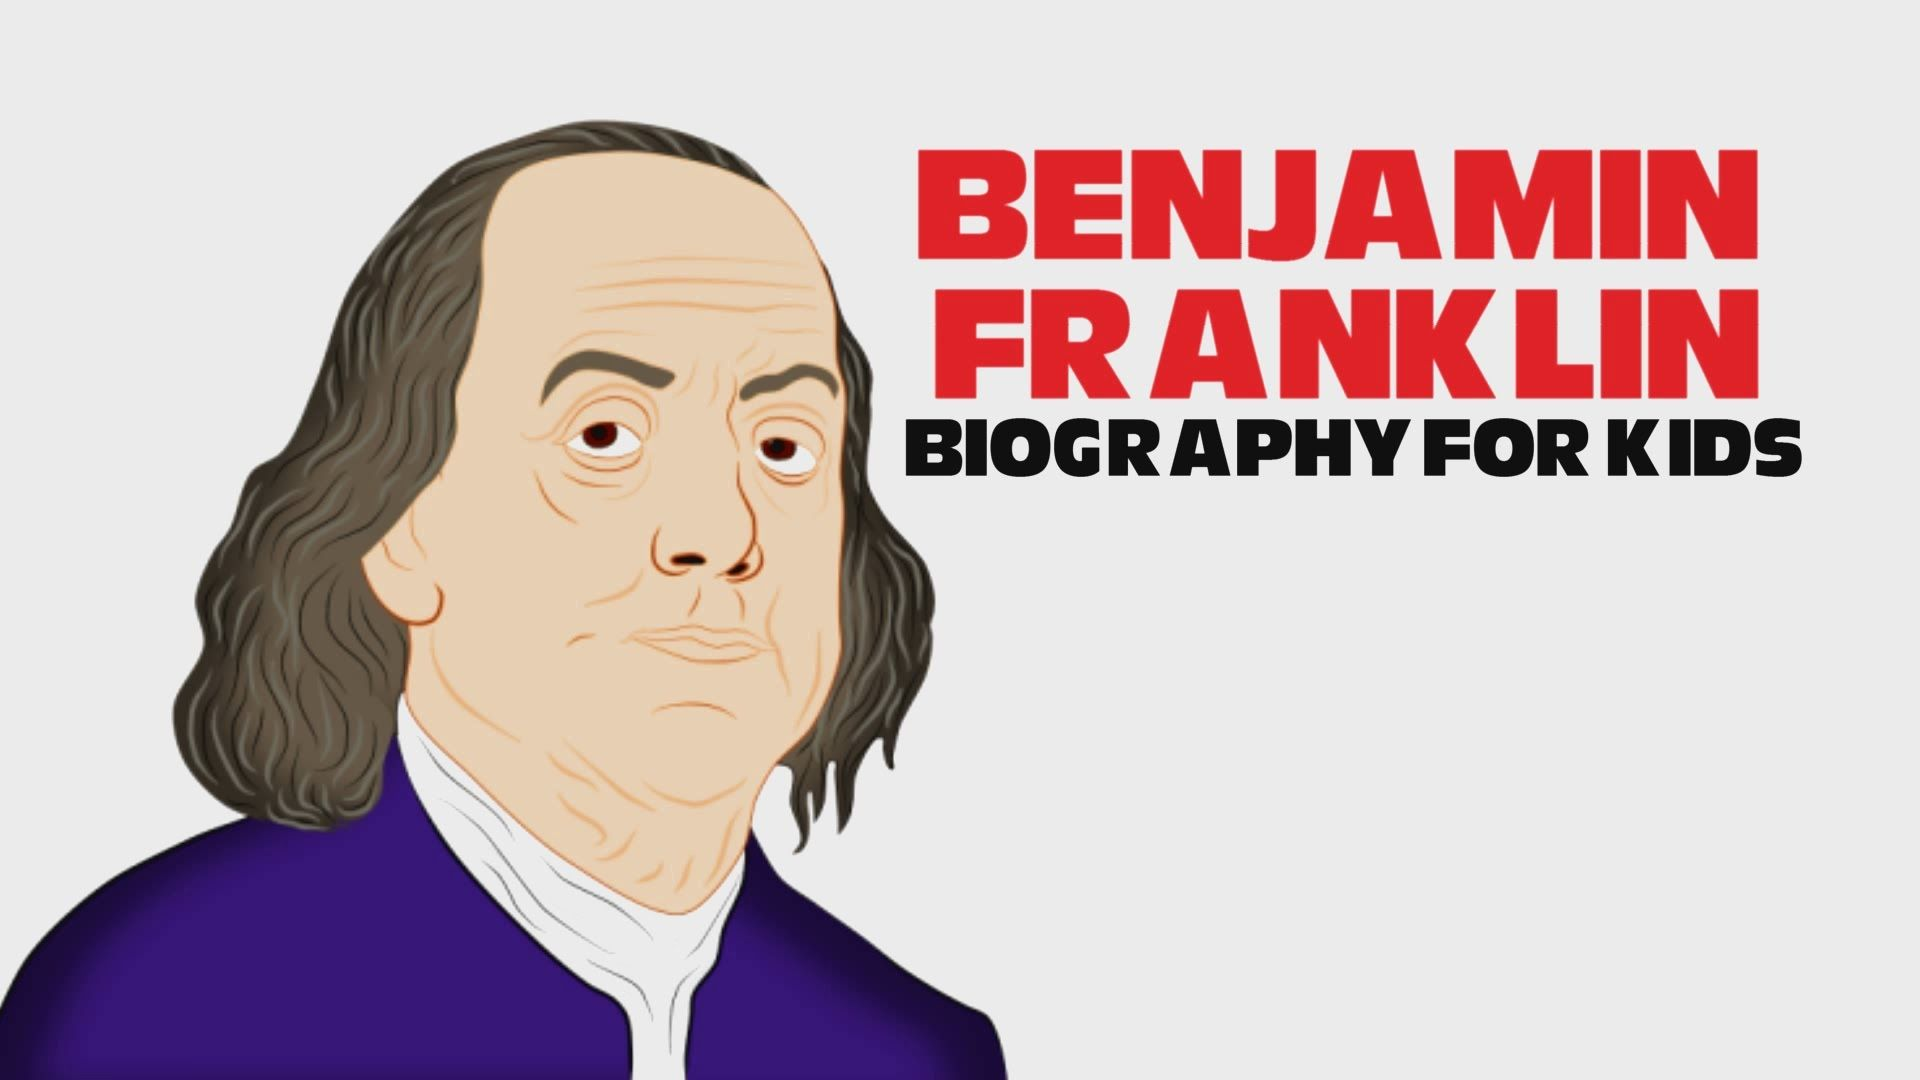 Benjamin Franklin Cartoon For Children Ben Franklin